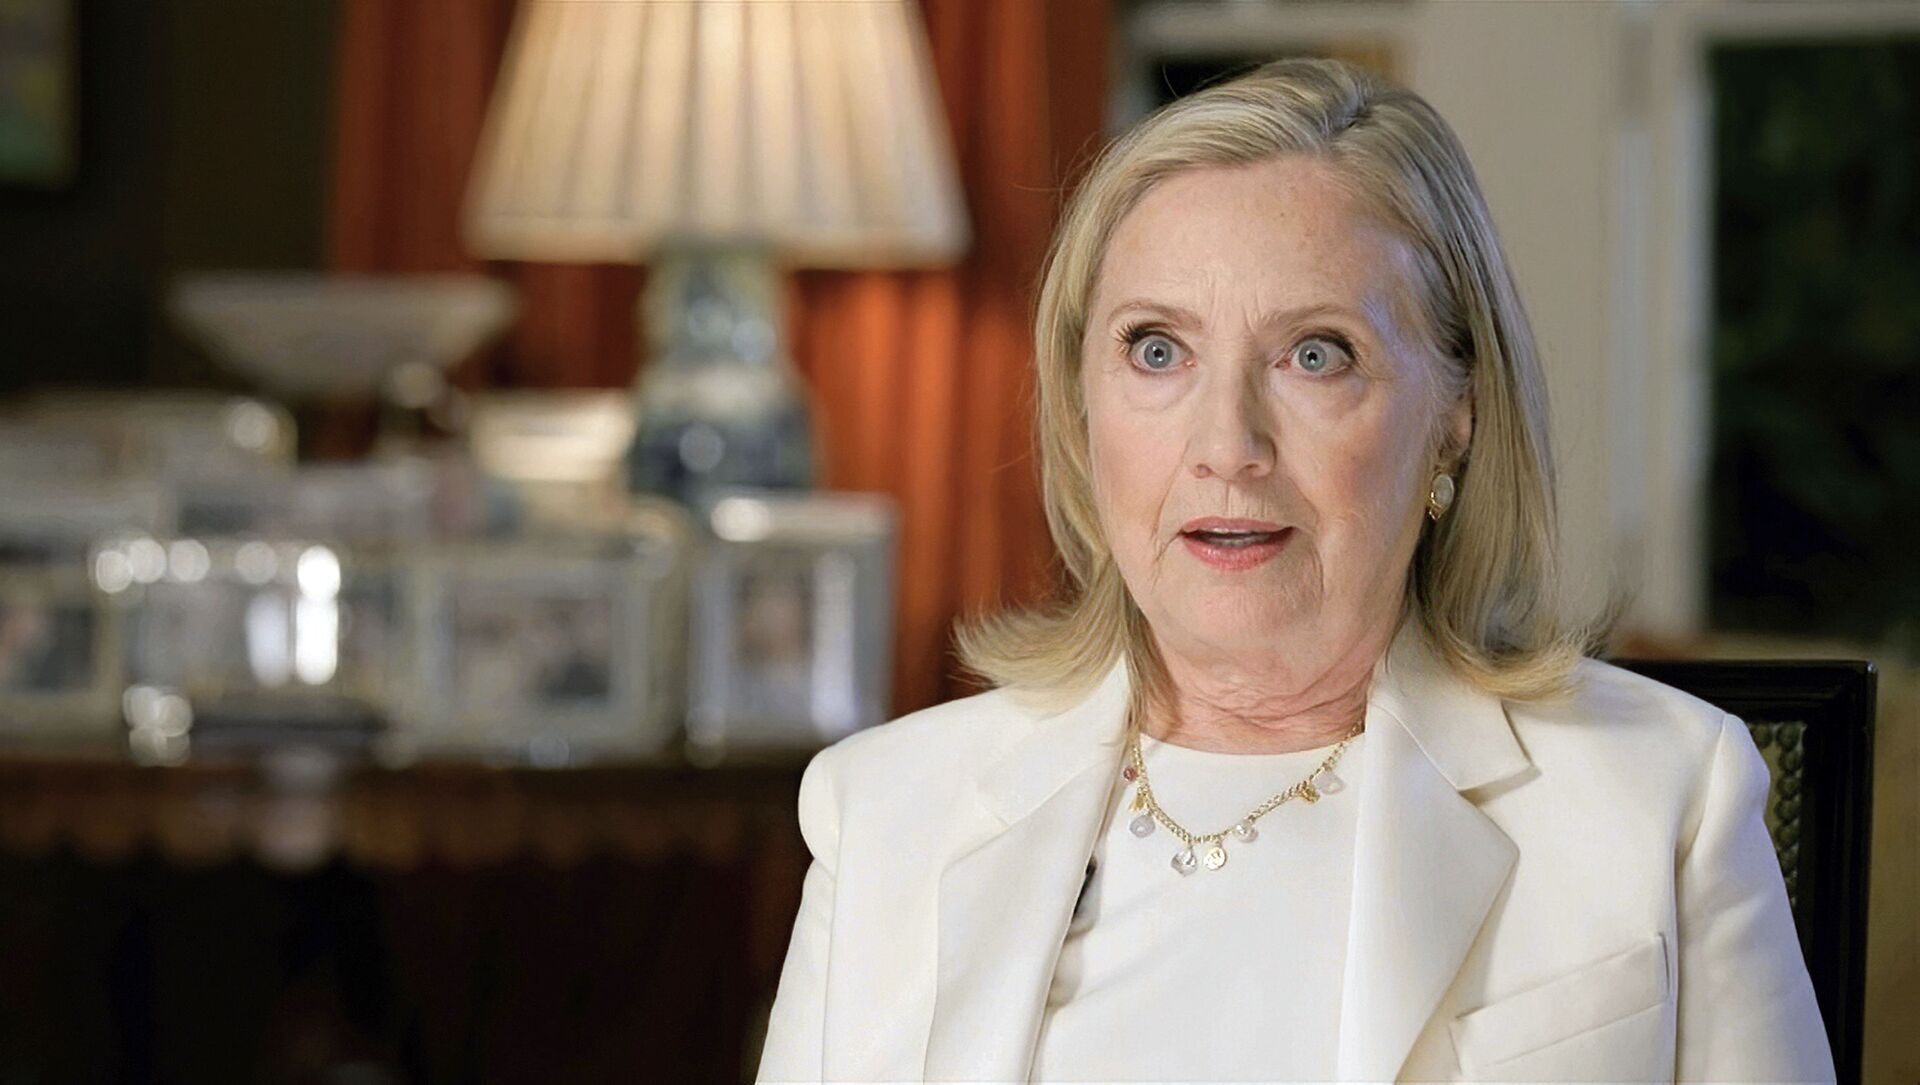 In this image from video, former Secretary of State Hillary Clinton speaks during the third night of the Democratic National Convention on Wednesday, Aug. 19, 2020 - Sputnik International, 1920, 29.05.2021